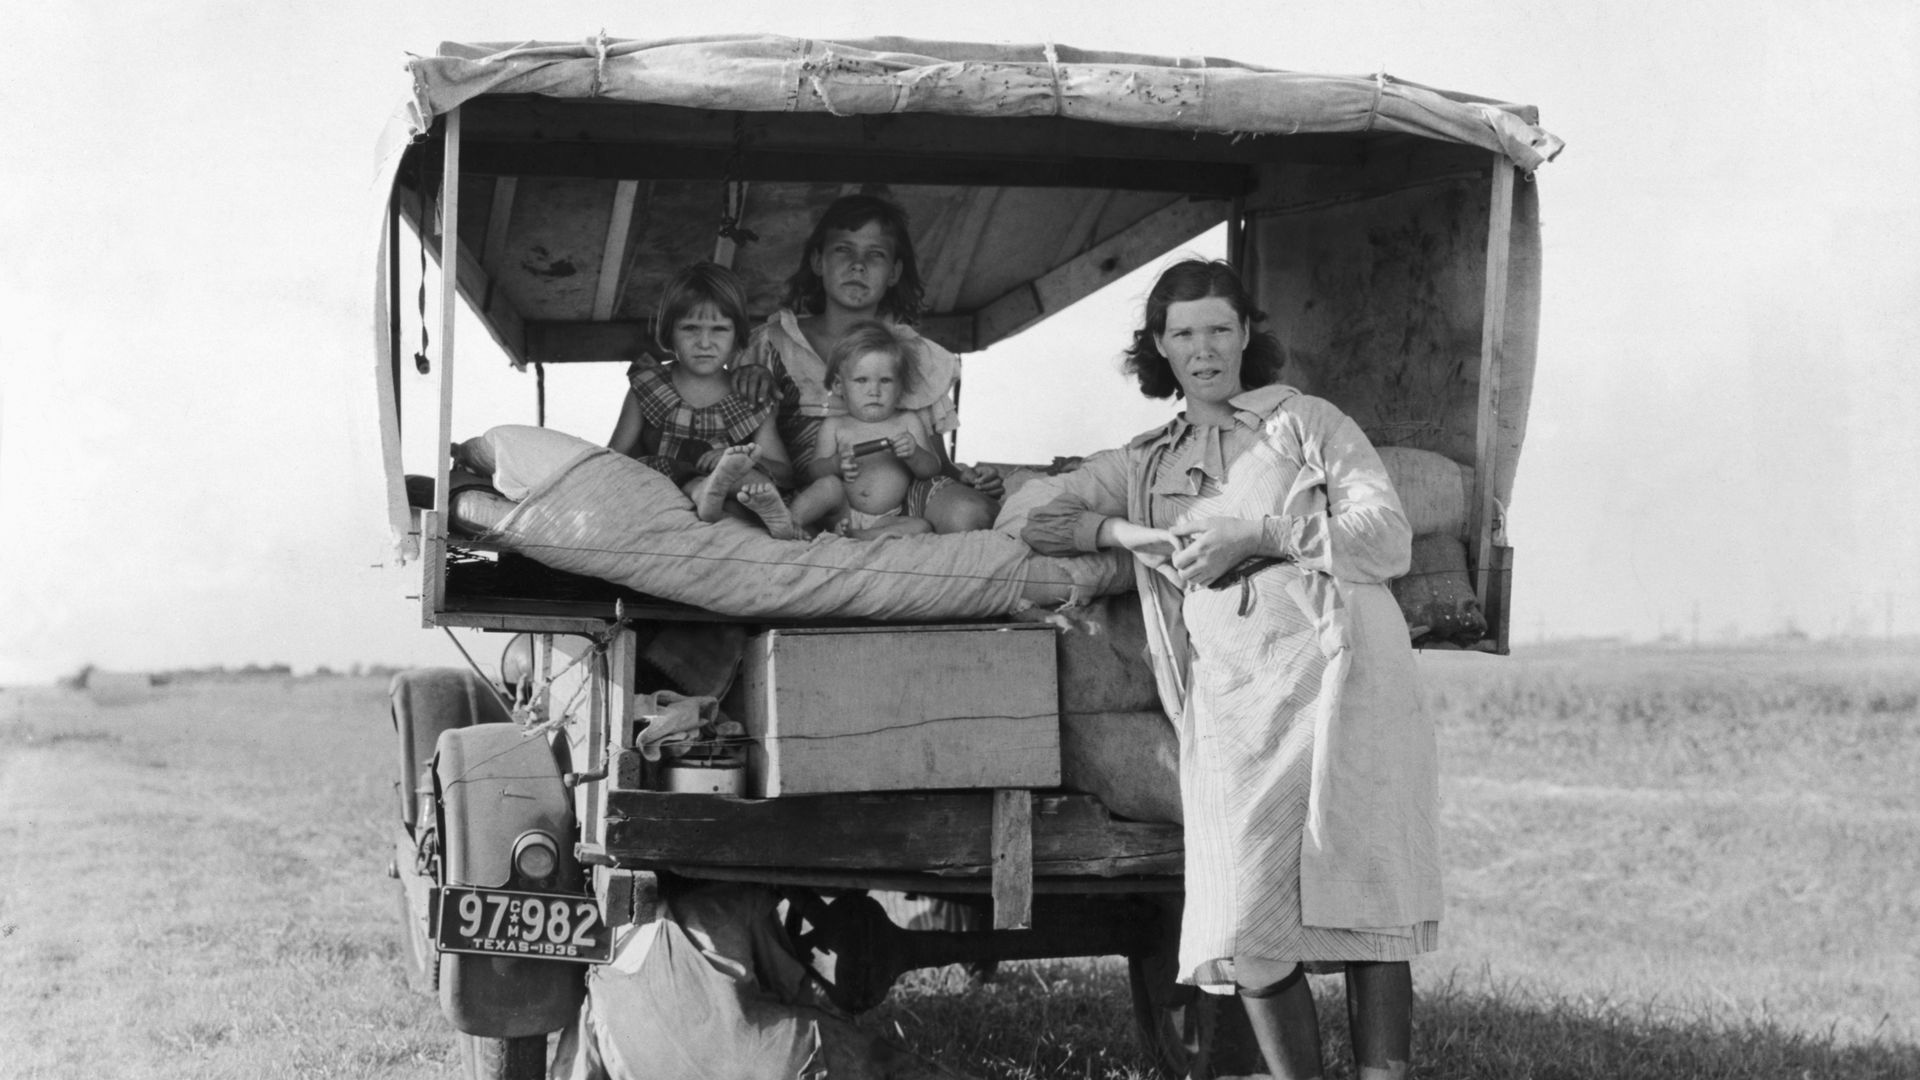 A black and white photo of a family in a carriage